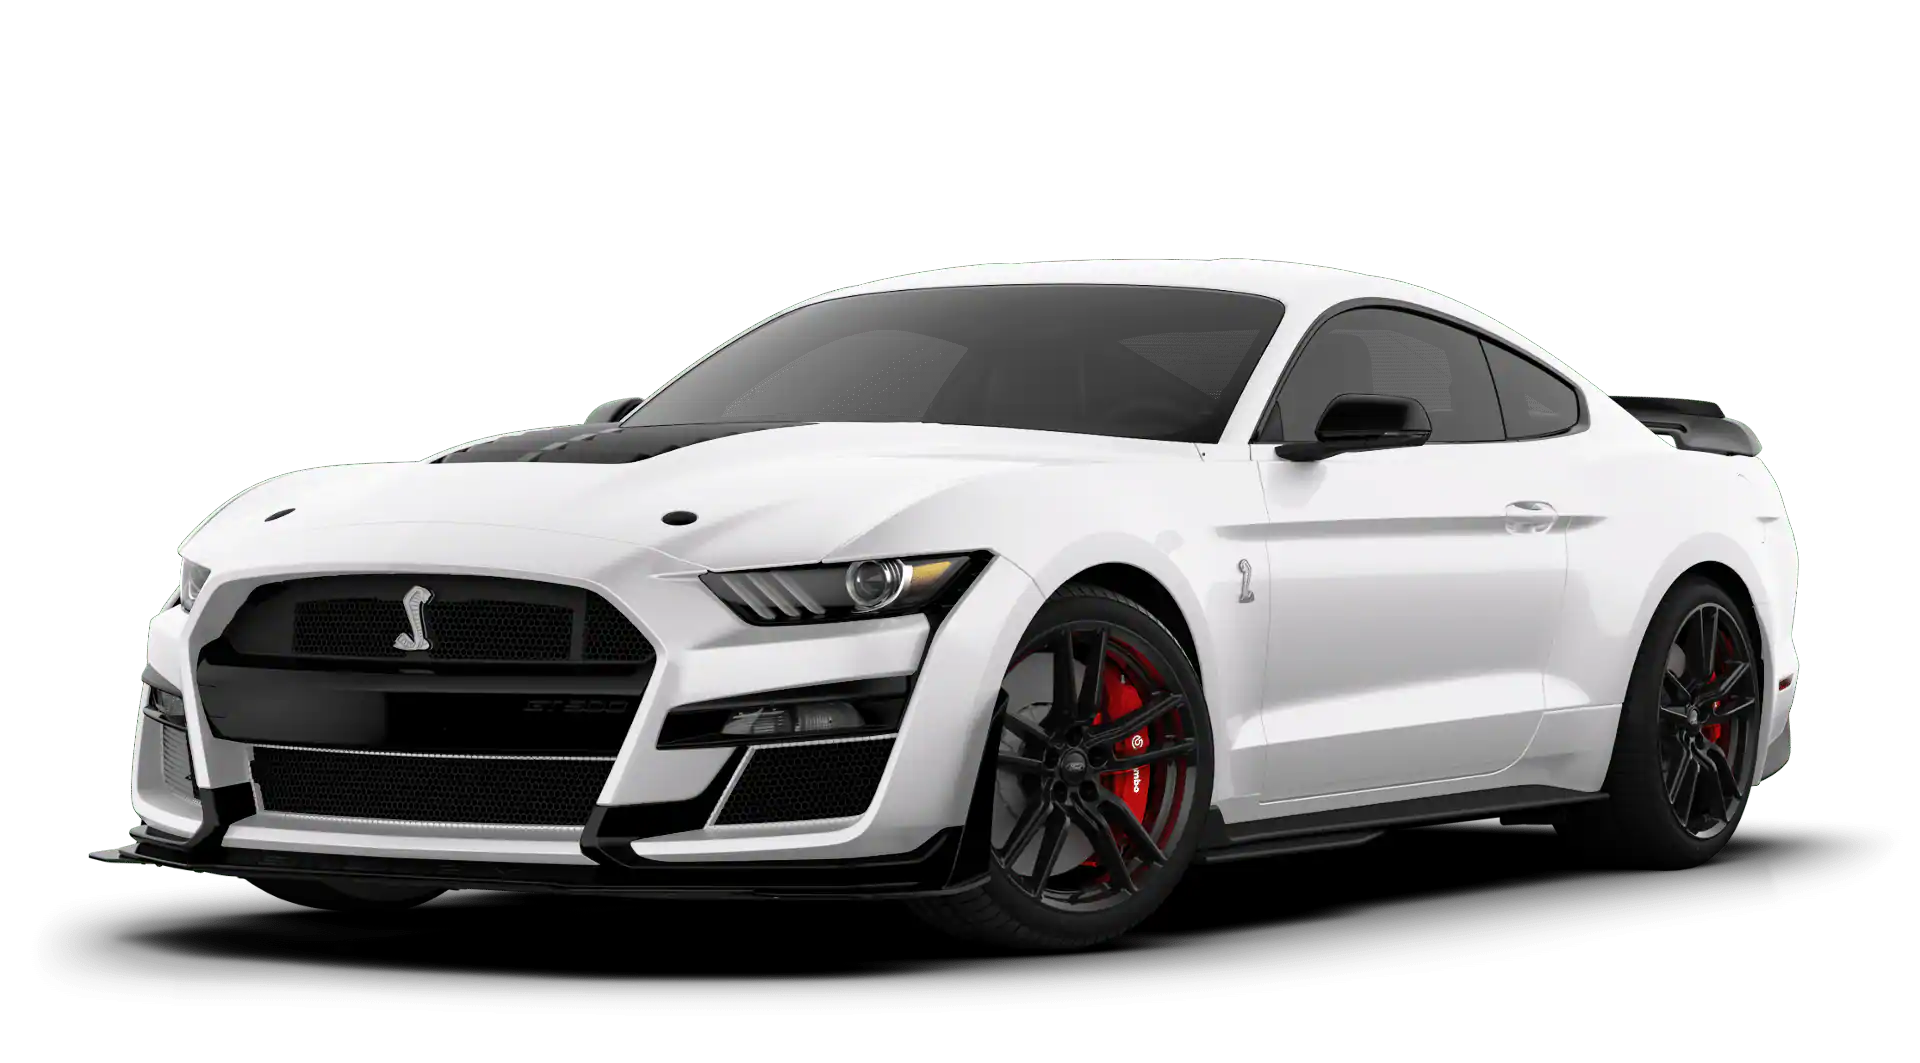 2020 Ford Mustang Shelby GT500 Oxford White